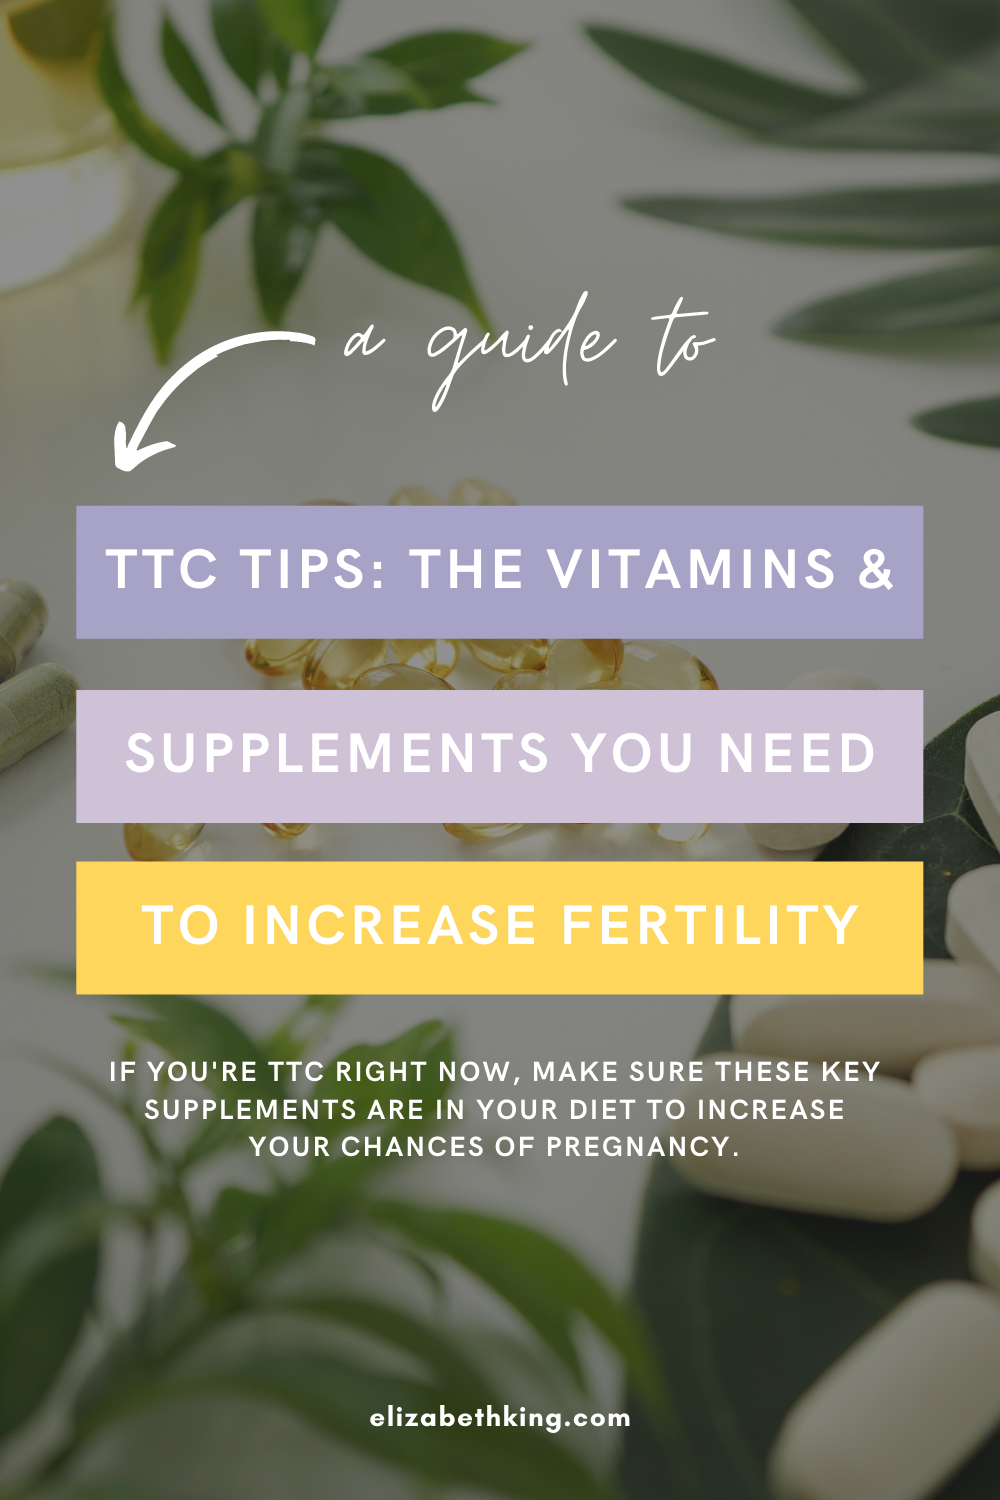 TTC Tips: The Vitamins & Supplements You Need to Increase Fertility | ElizabethKing.com